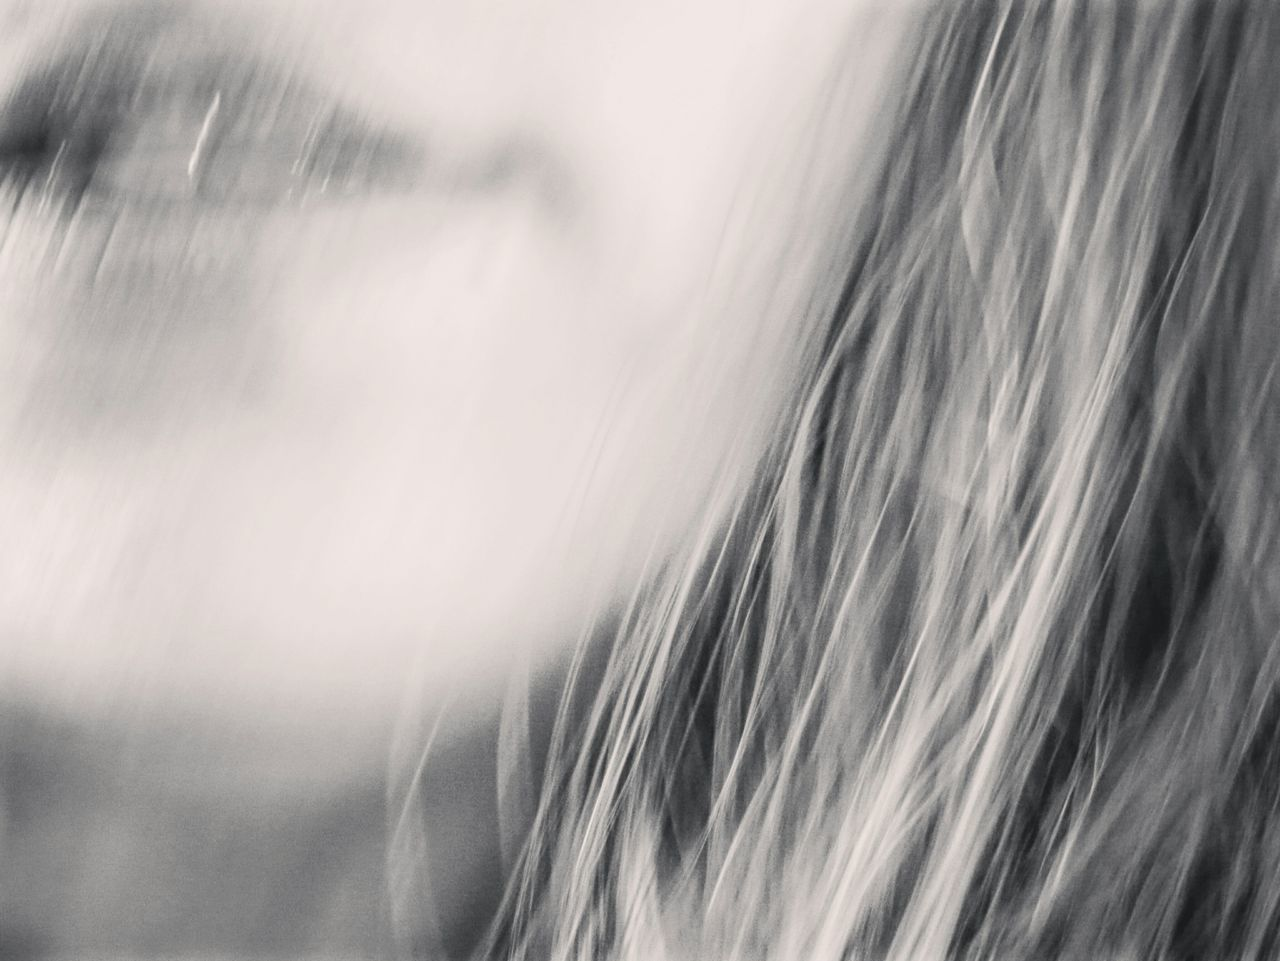 I see blur - MAinLoveWithLightAndShadow & VanessArt shooting Lips & Hair & Smile in Blur Portrait Monochrome Black And White How I See The World - 11.10.2015